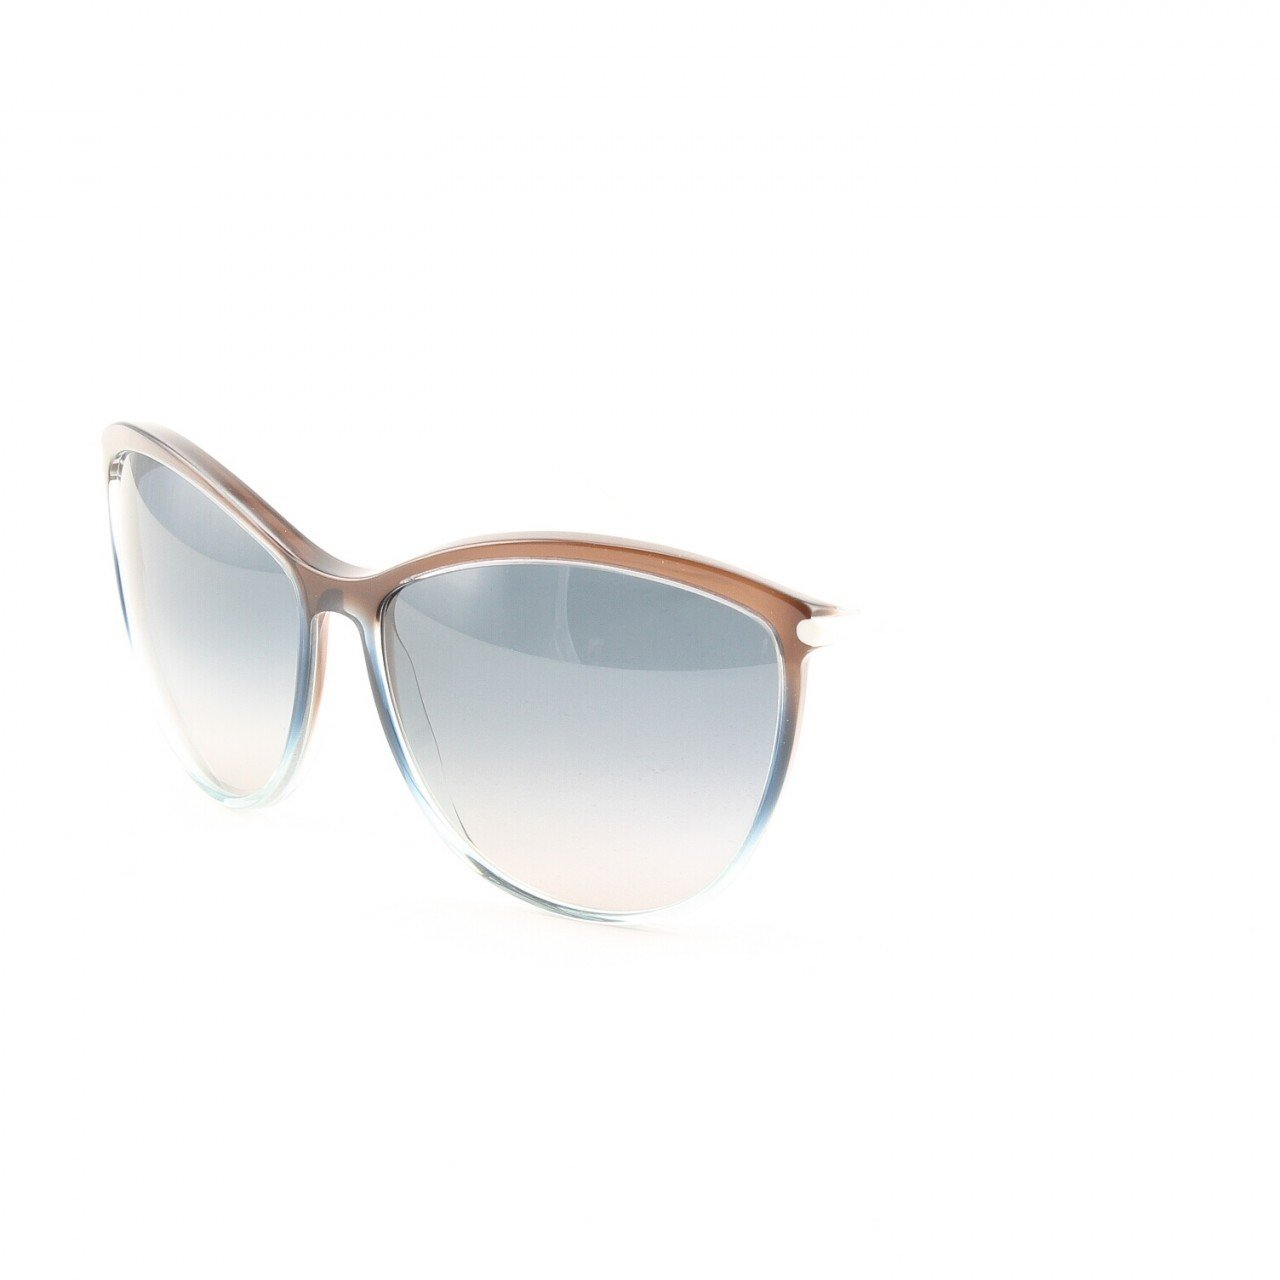 Marni MA183S Sunglasses Col. 10 Chocolate Brown Light Teal and White with Brown Gradient Lenses